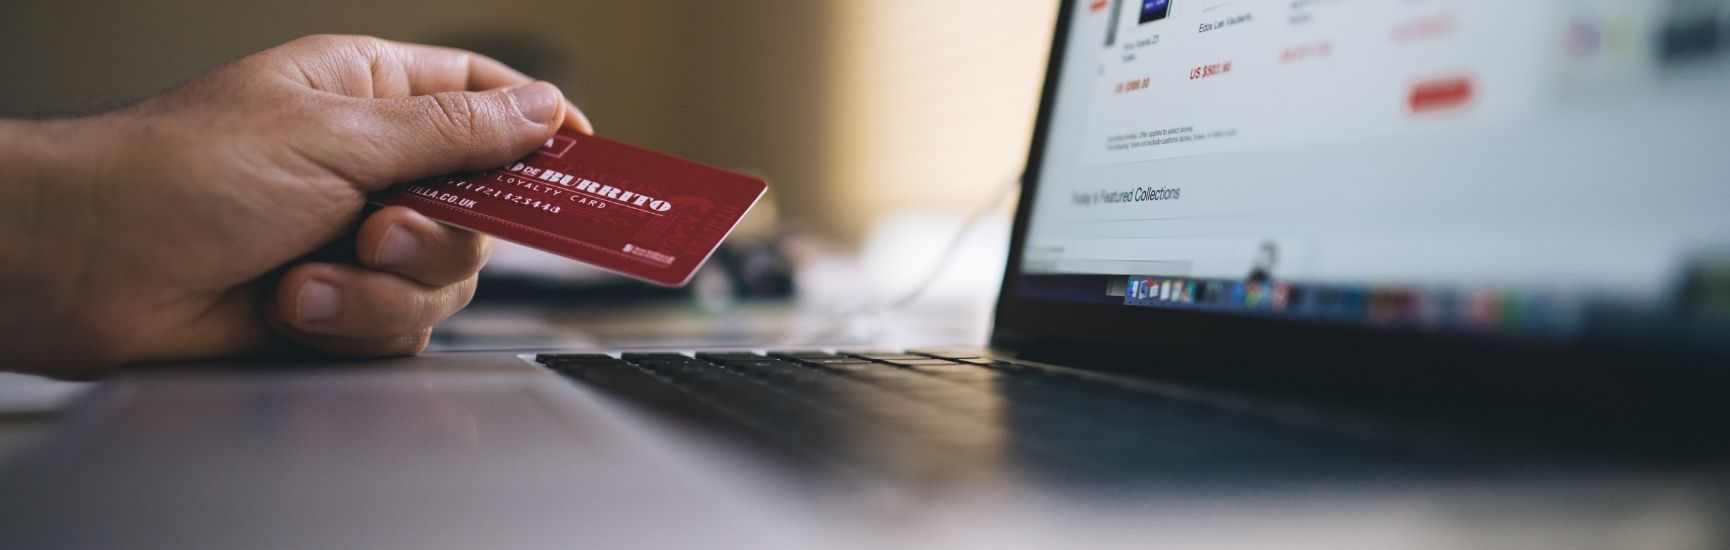 The Future of eCommerce and Why You Should Bet on Its Growth